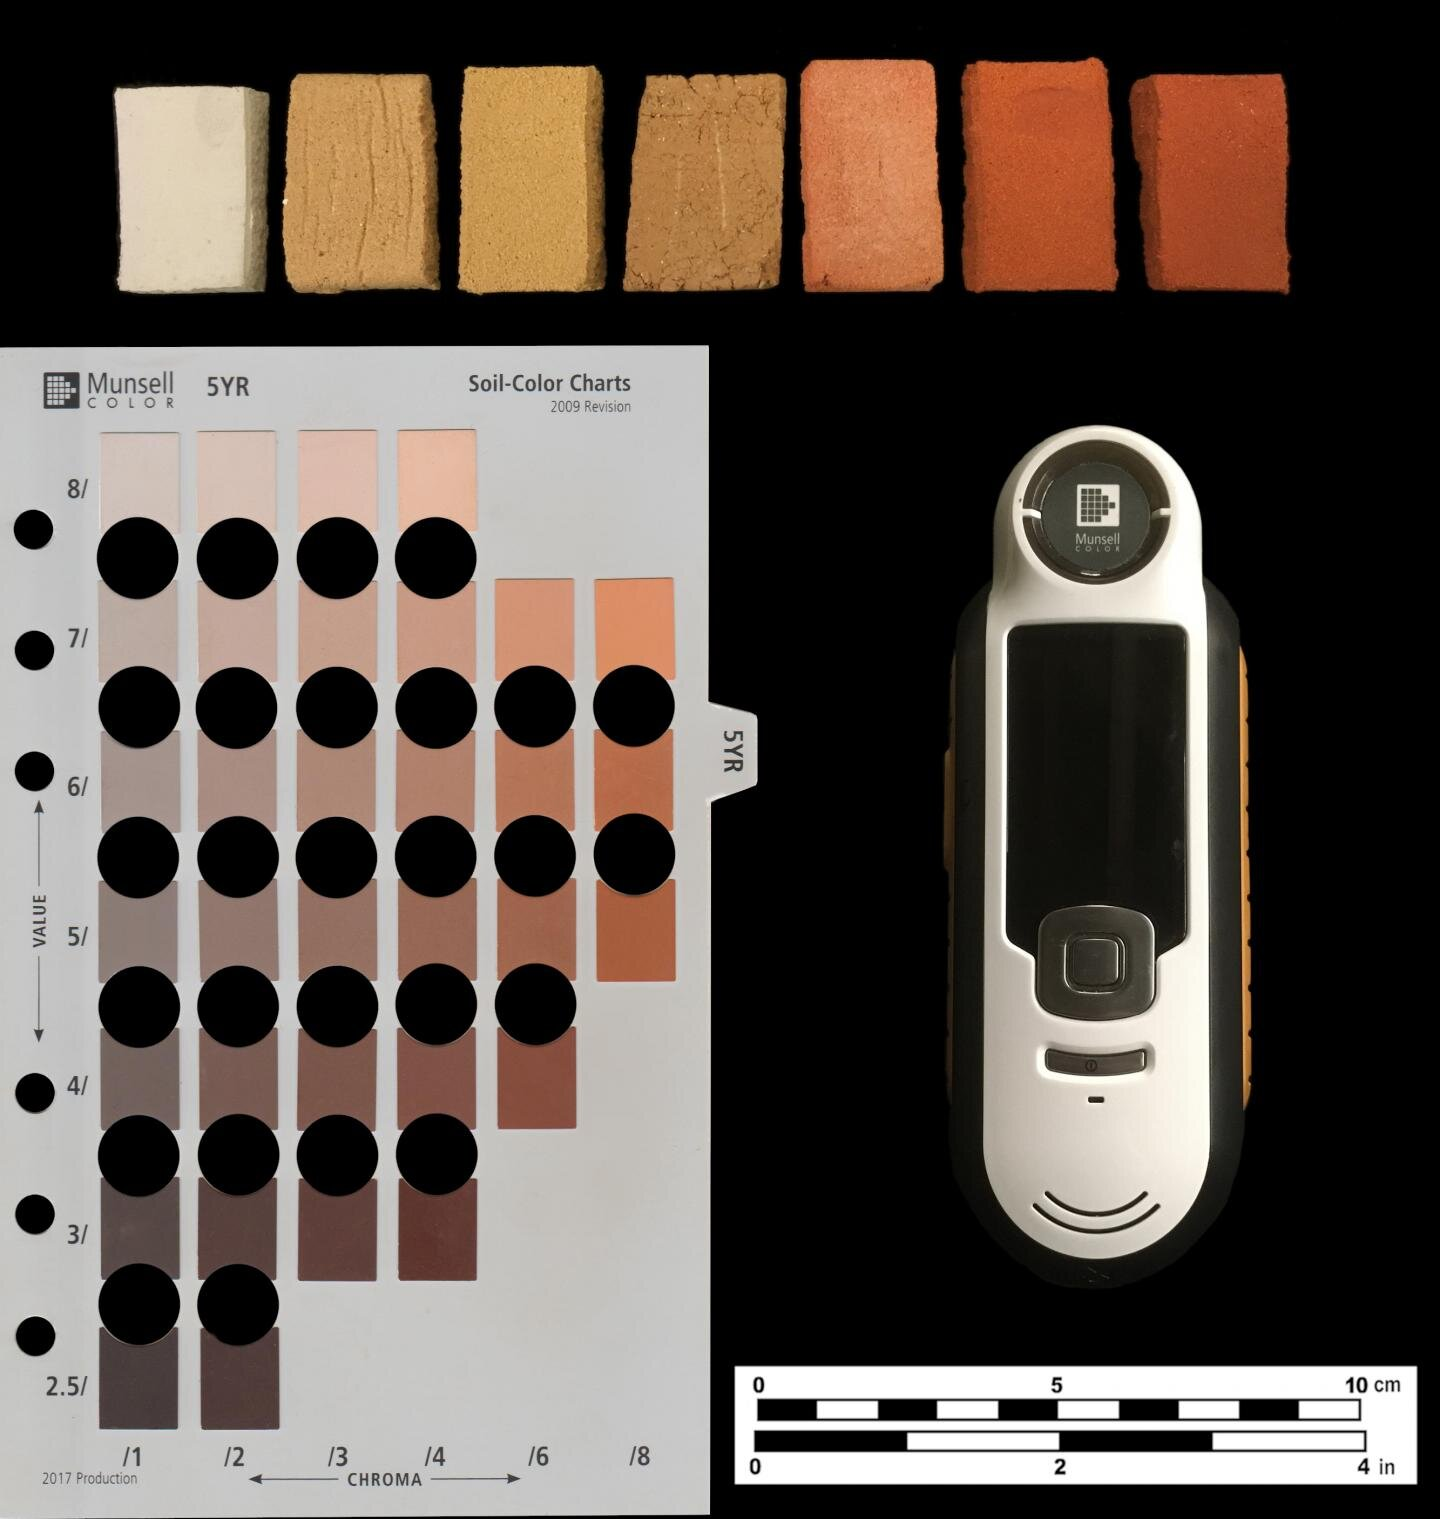 Human eye beats machine in archaeological color identification test